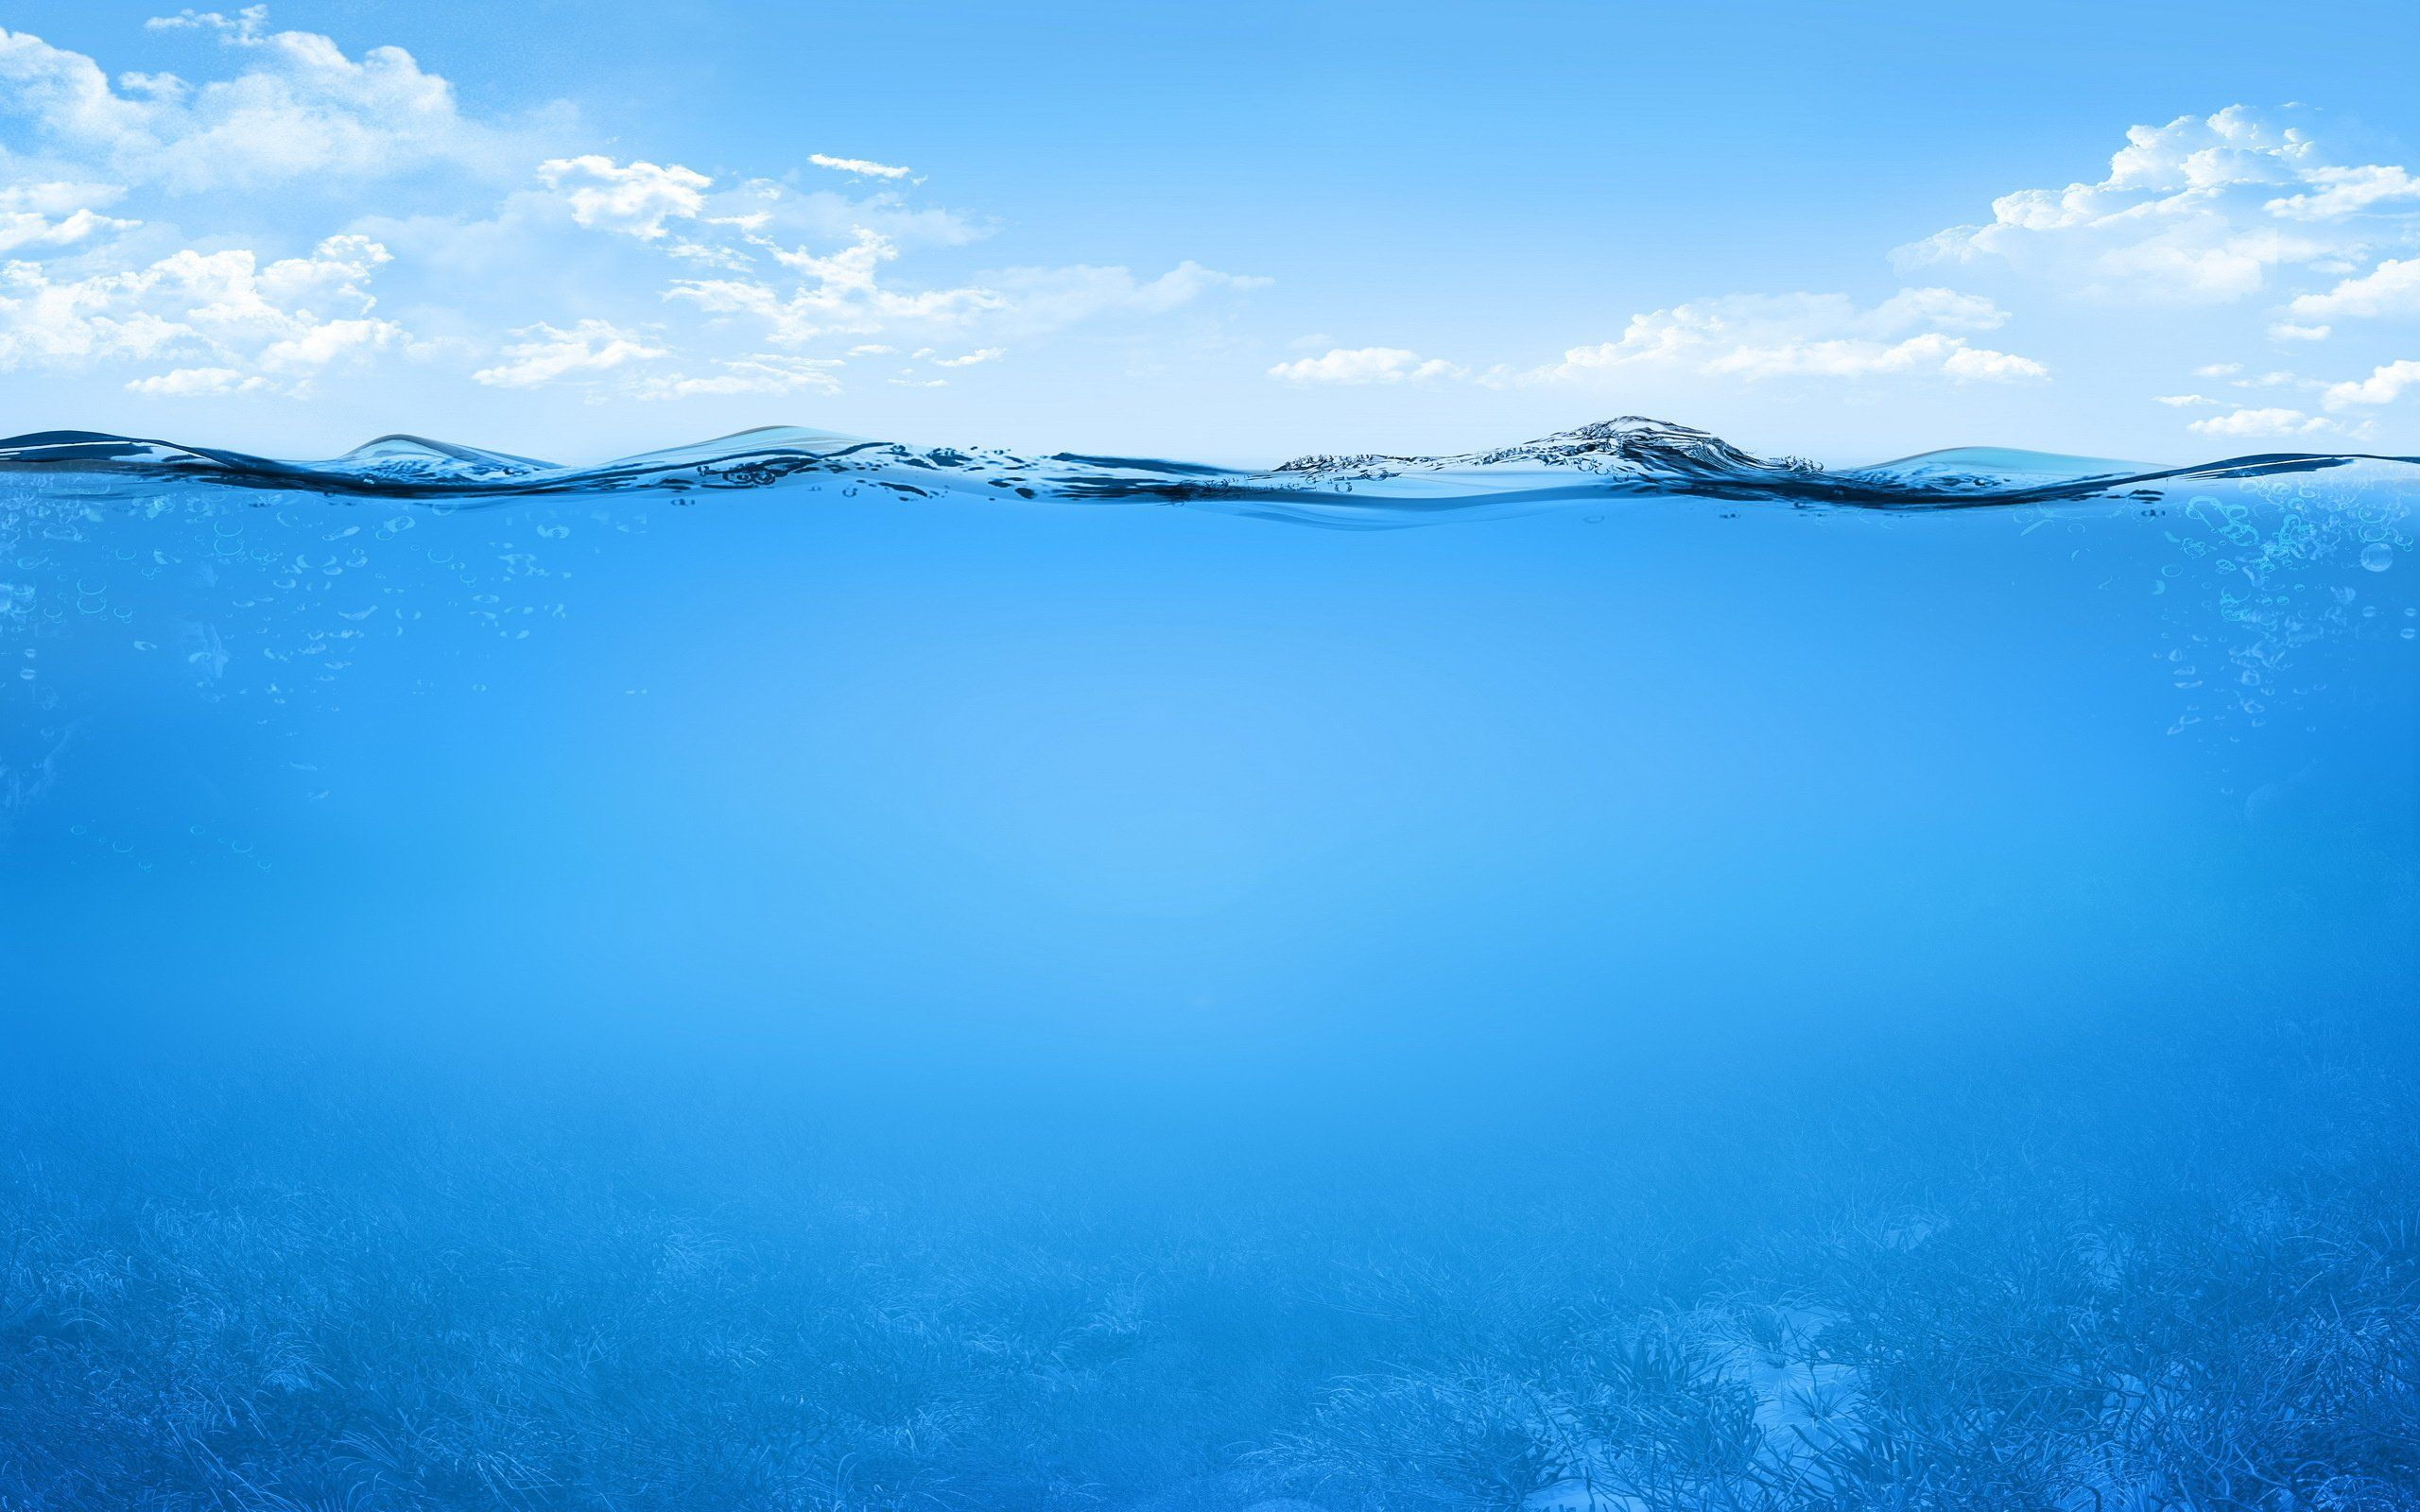 Home Water Filter >> Under Water Wallpaper 25 - [2560x1600]